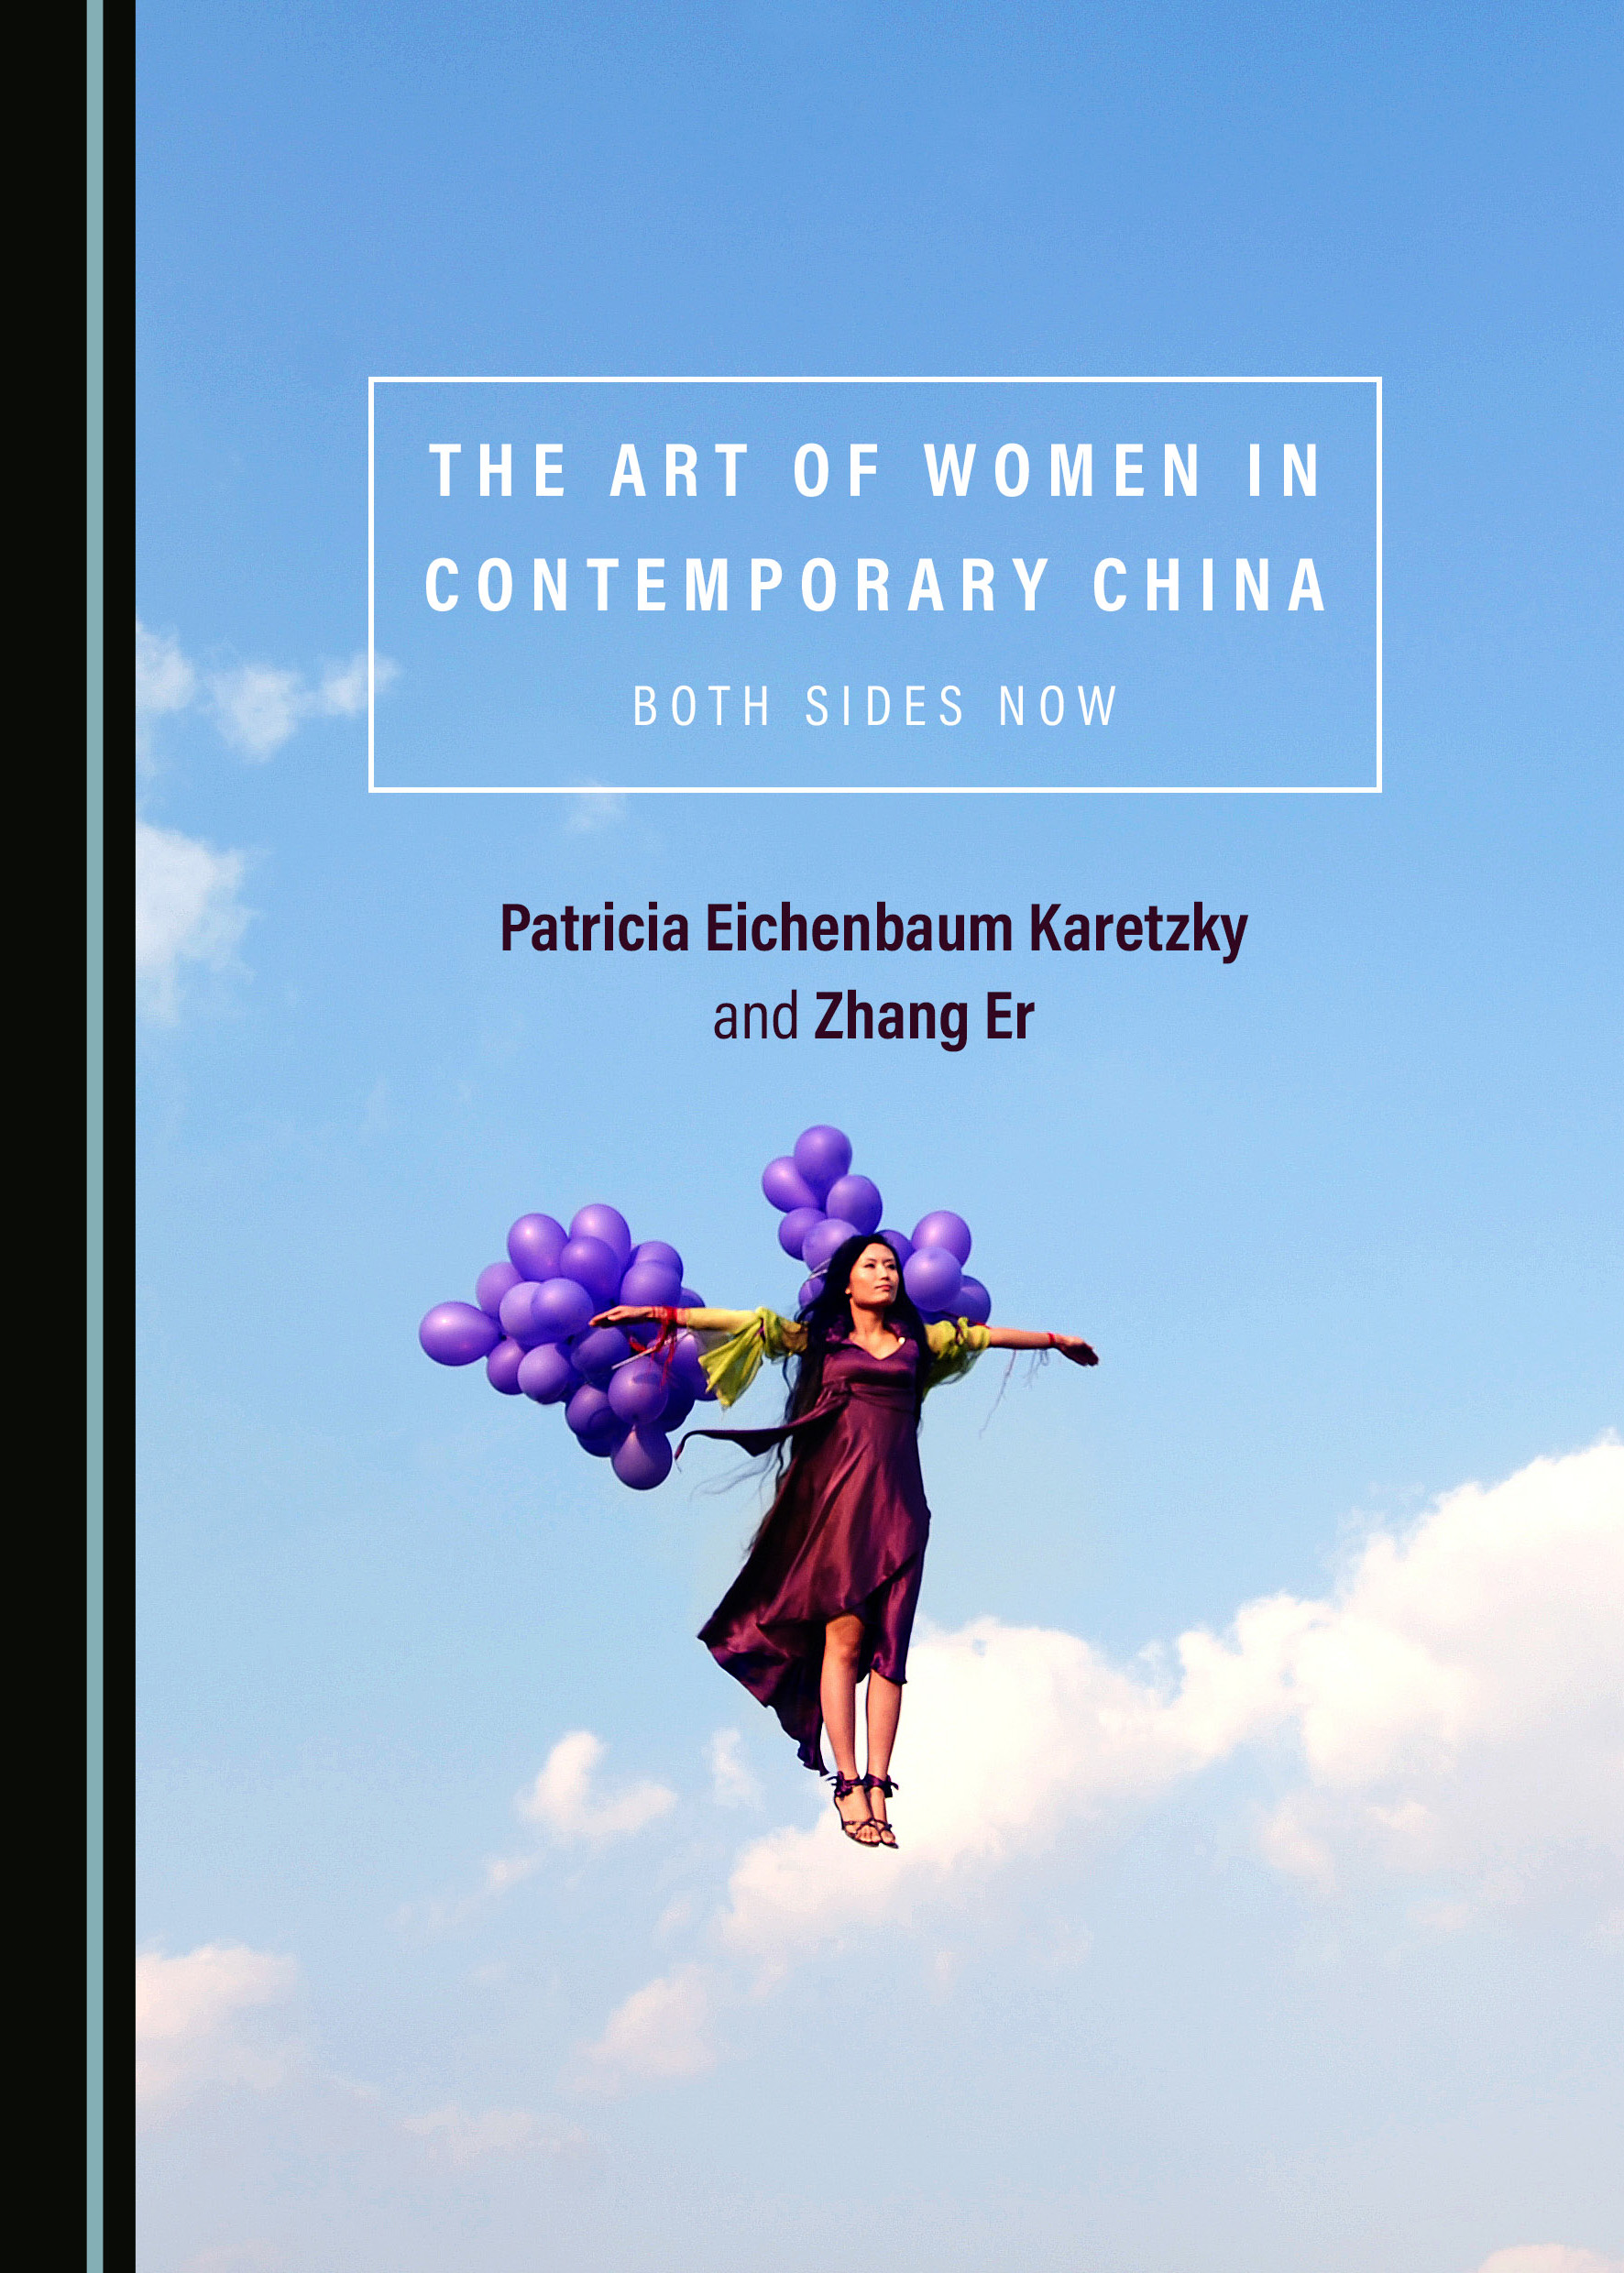 The Art of Women in Contemporary China: Both Sides Now